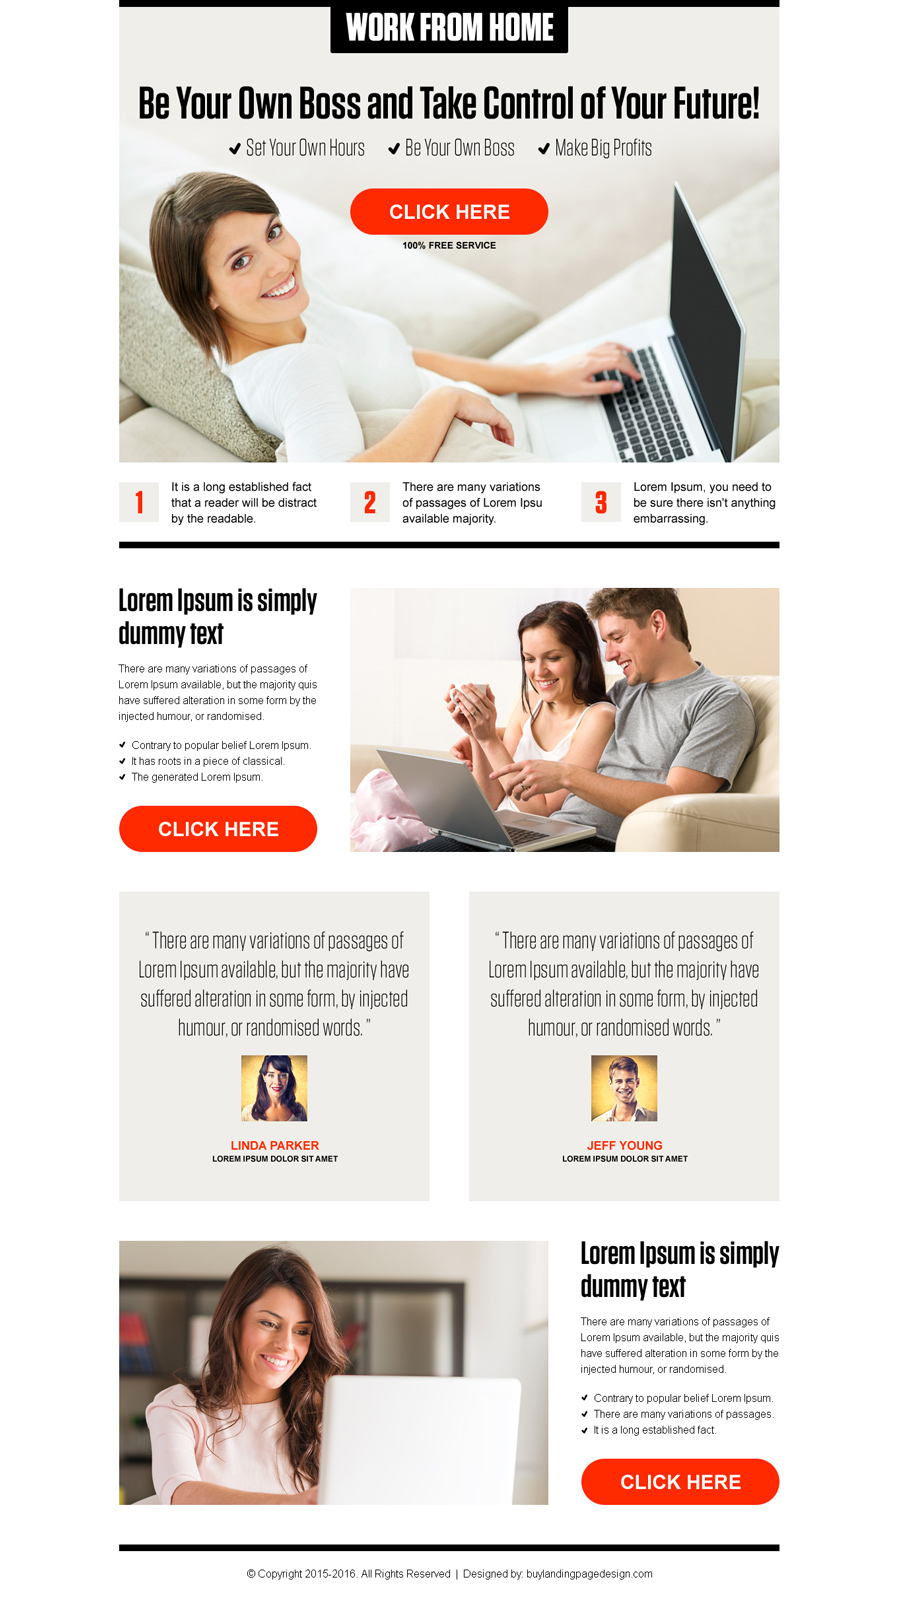 work-from-home-ppc-landing-page-design-that-converts-013